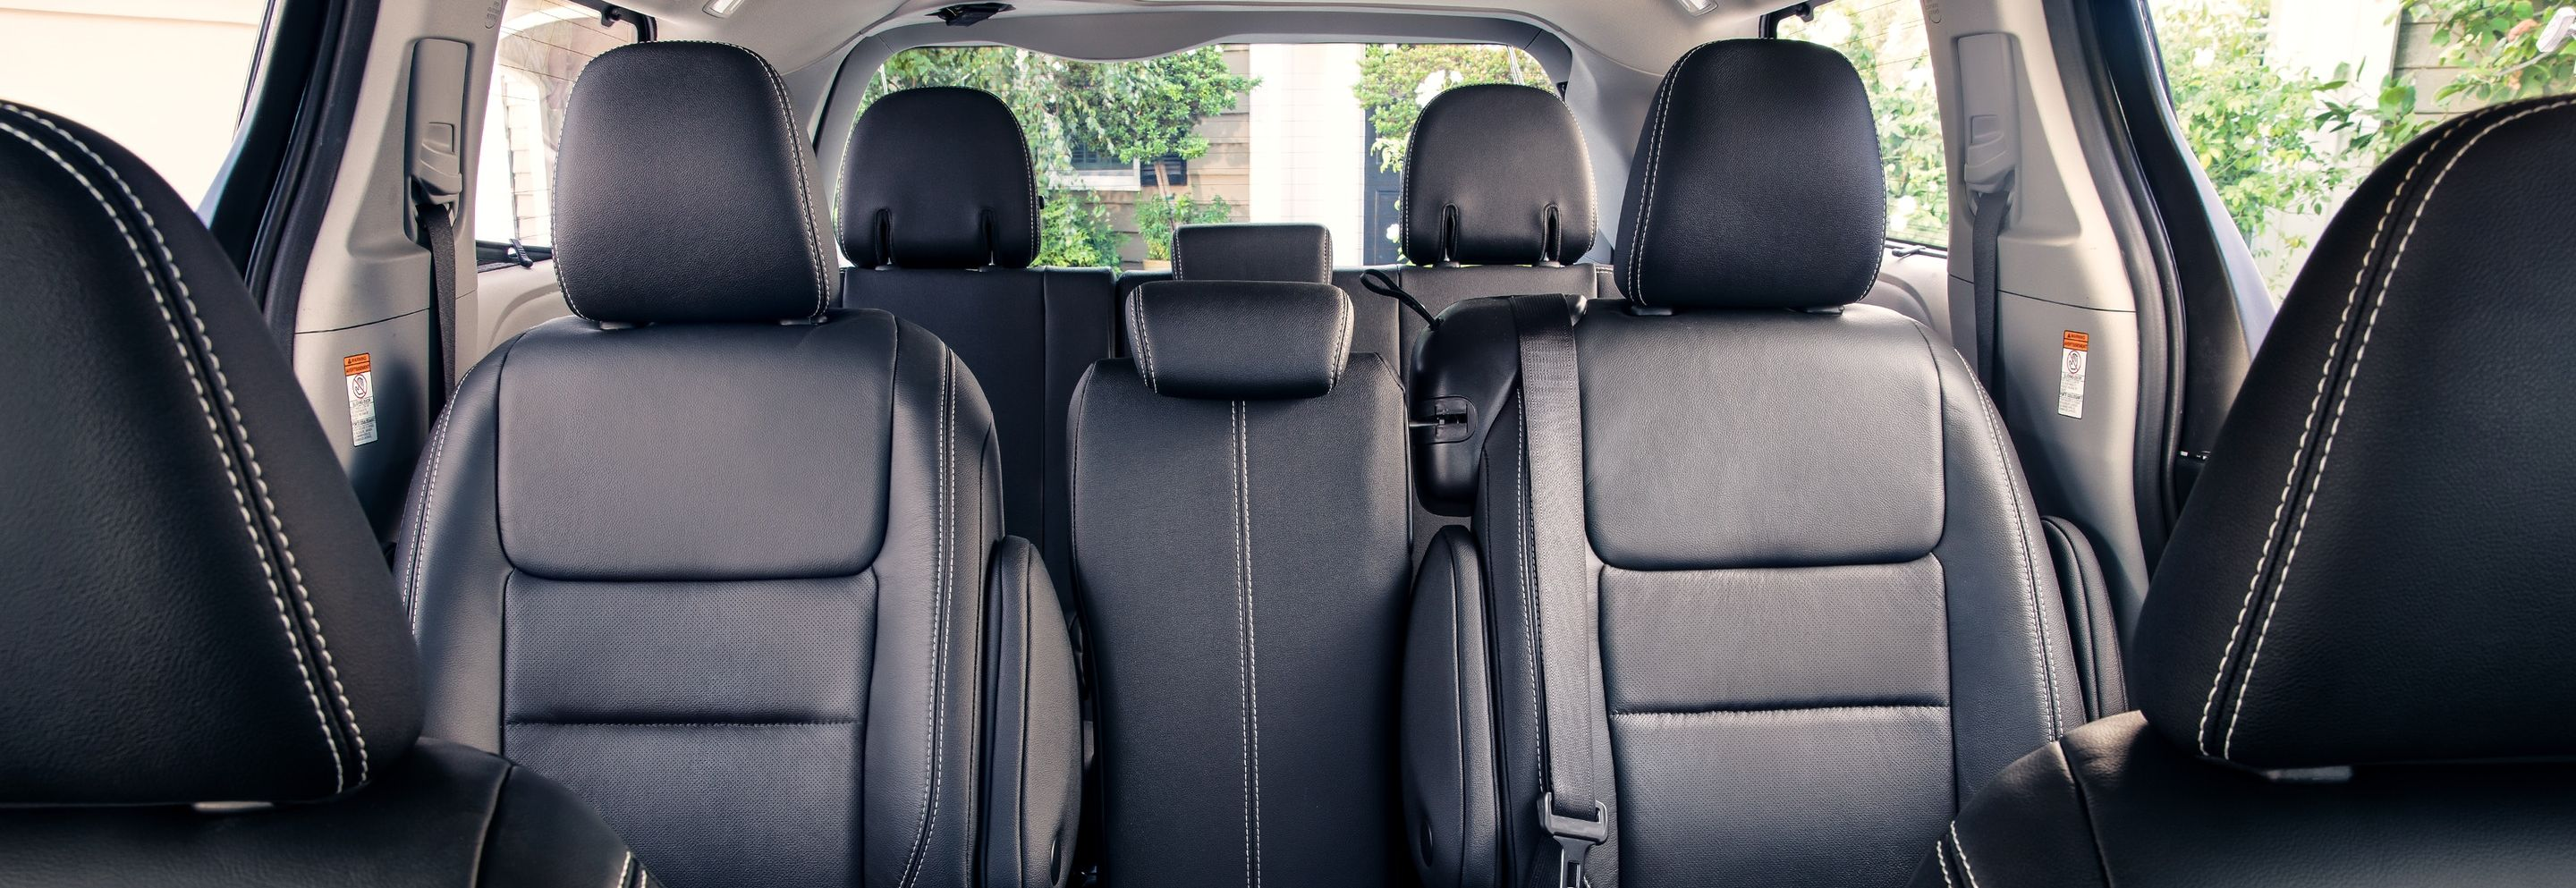 Spacious Cabin of the 2020 Sienna